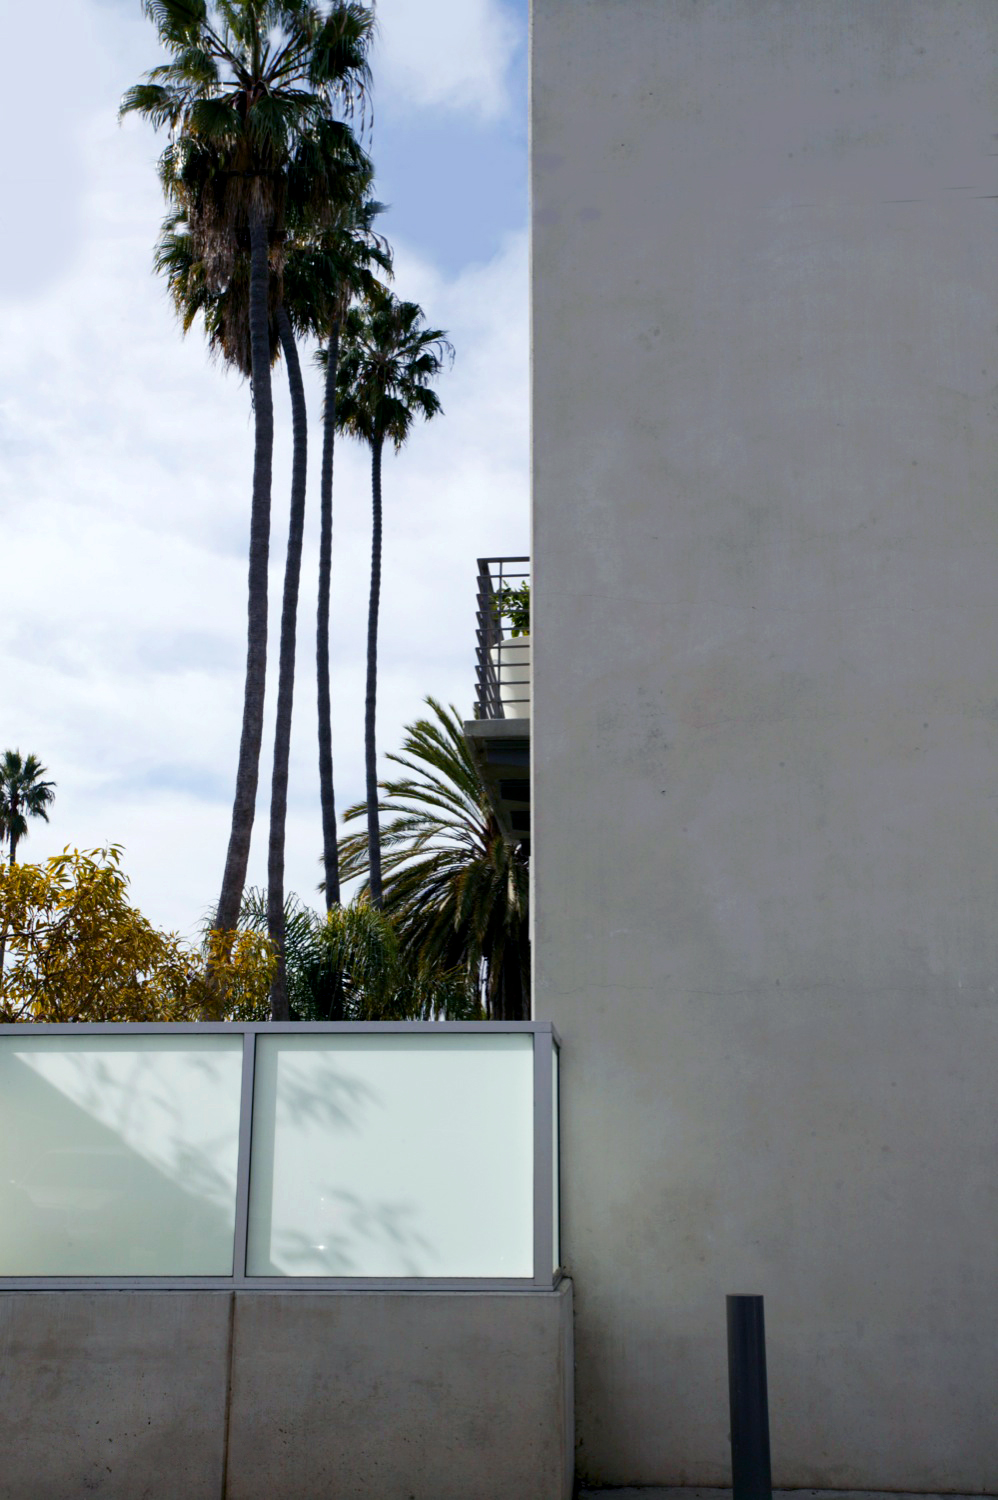 S.E.A.-Studio-Environmental-Architecture-David-Hertz-FAIA-Tilt-Up-Slab-House-Venice-Beach-California-sustainable-regenerative-restorative-green-design-prefabricated-concrete-residential-mindfulness-courtyard-passive-systems-natural-ventilation-cool-04.jpg